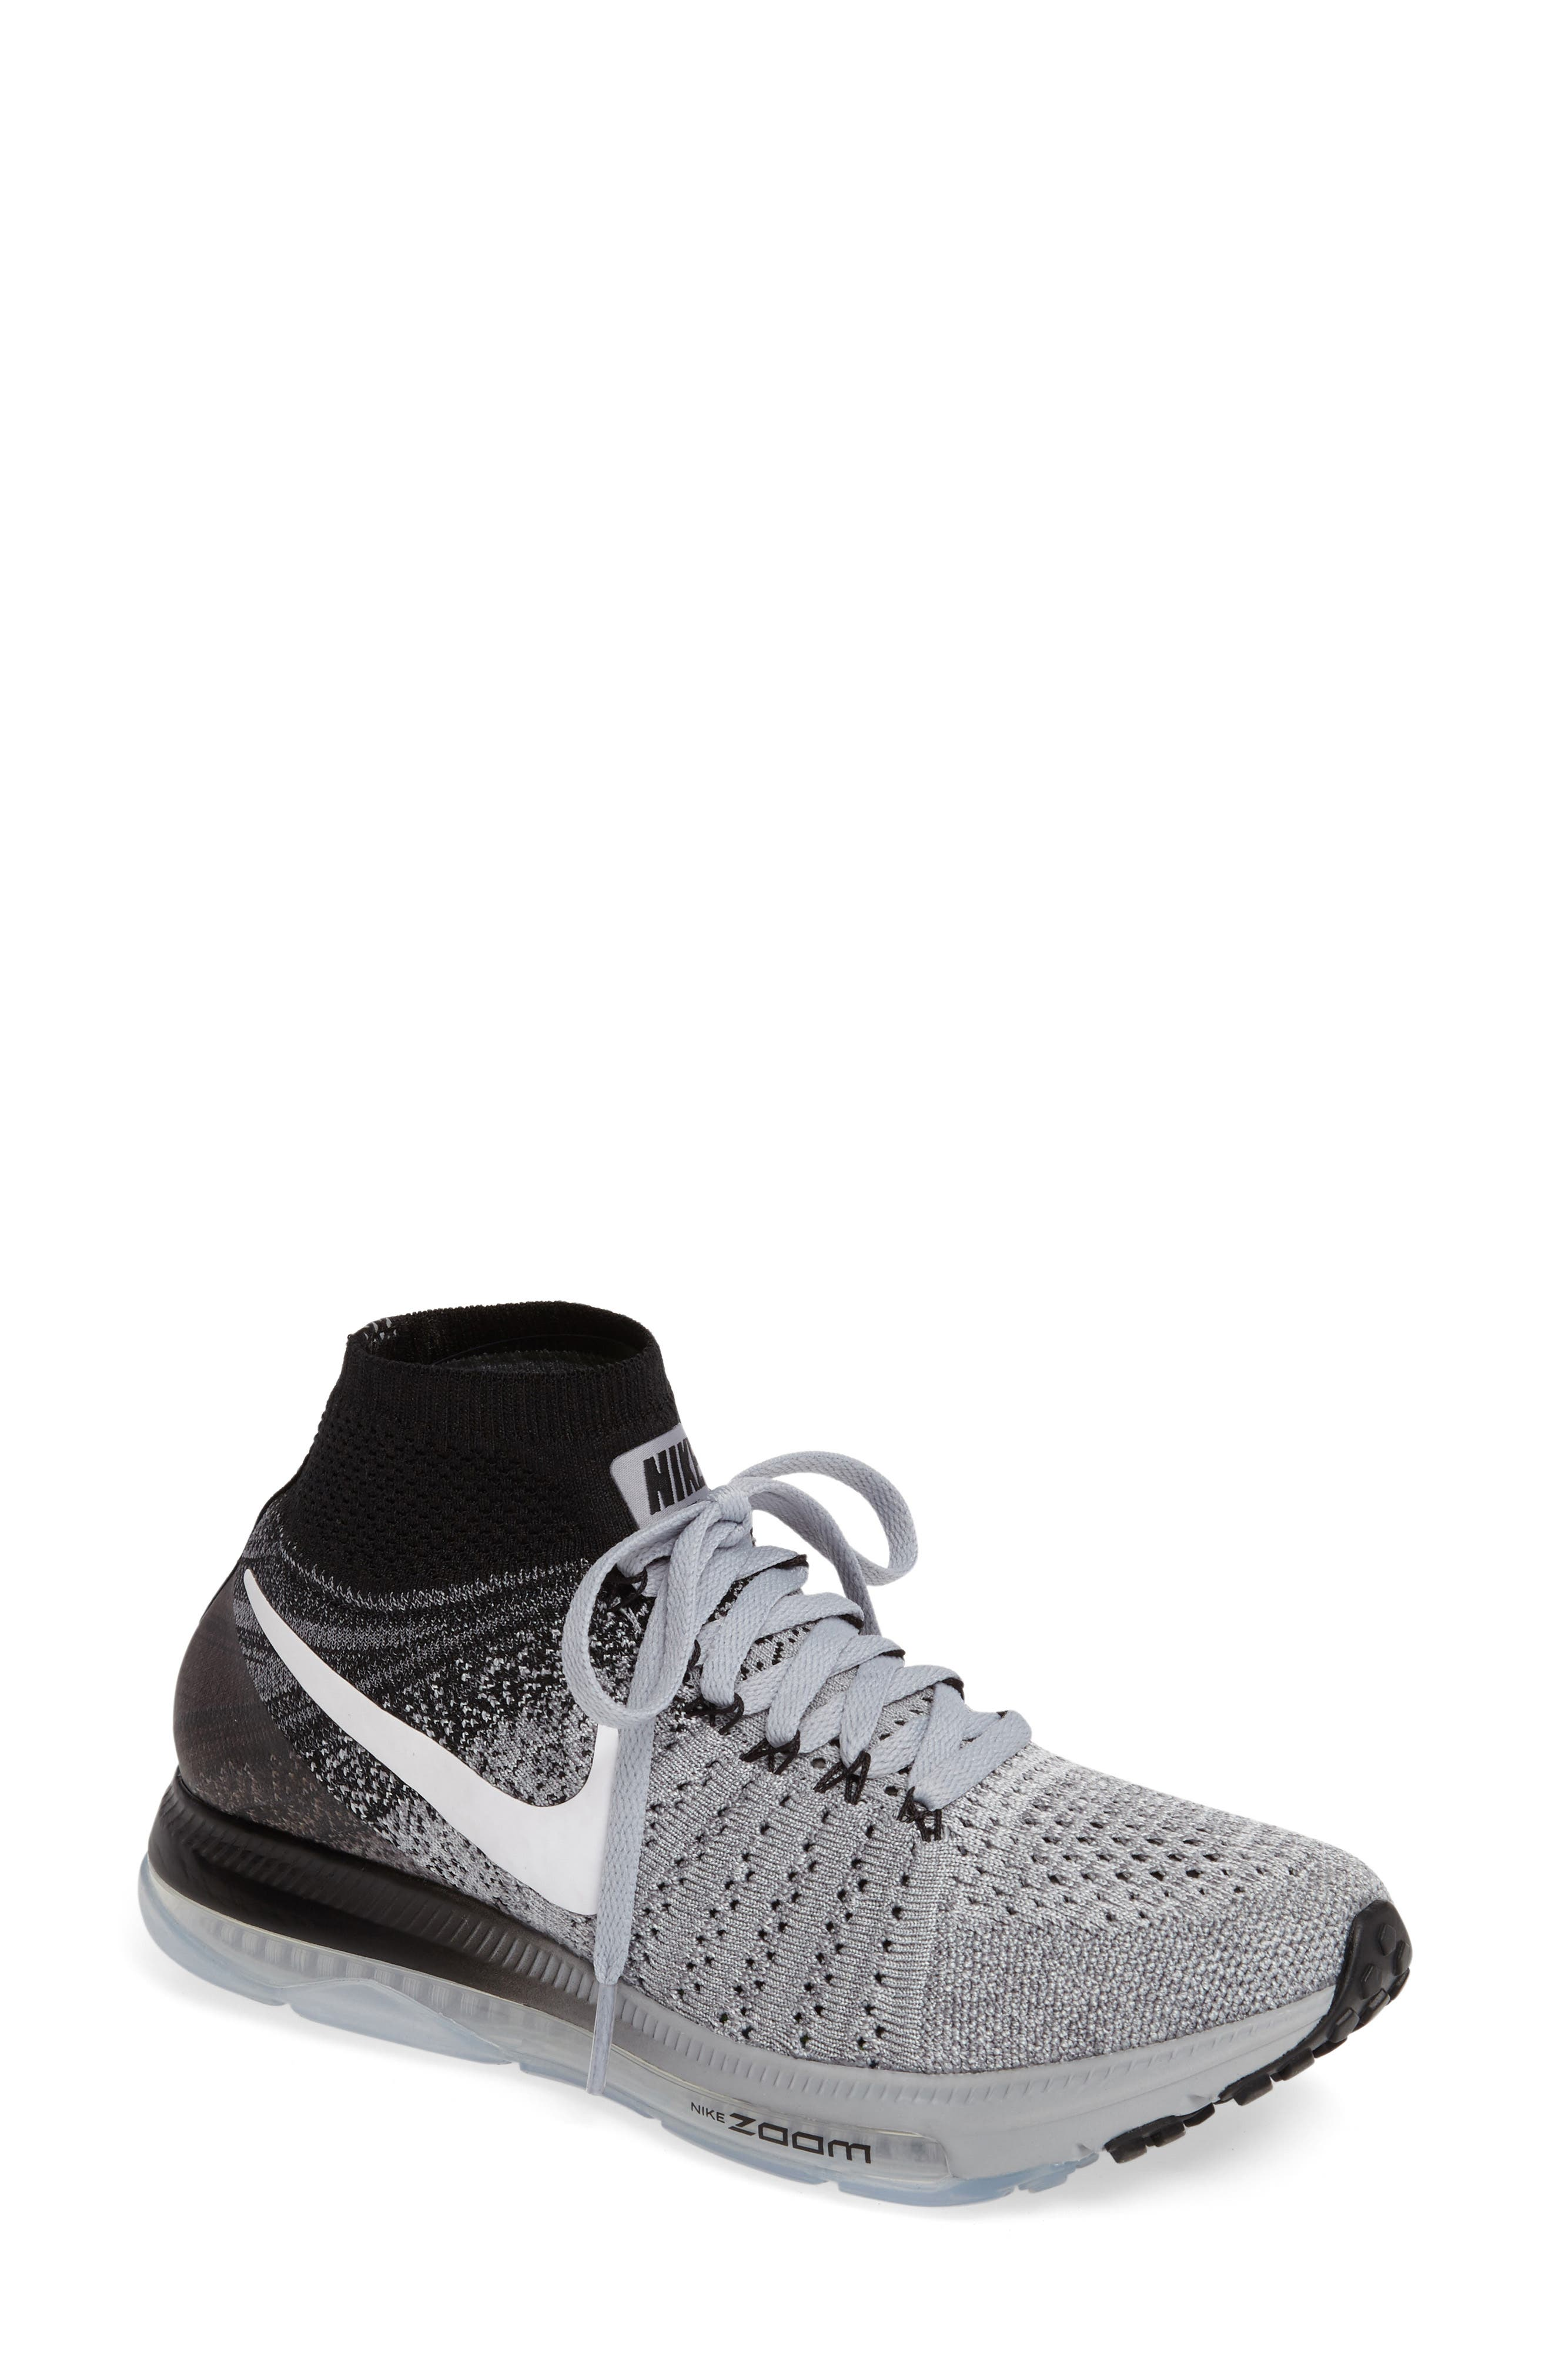 Air Zoom Pegasus All Out Flyknit Running Shoe, Main, color, 021